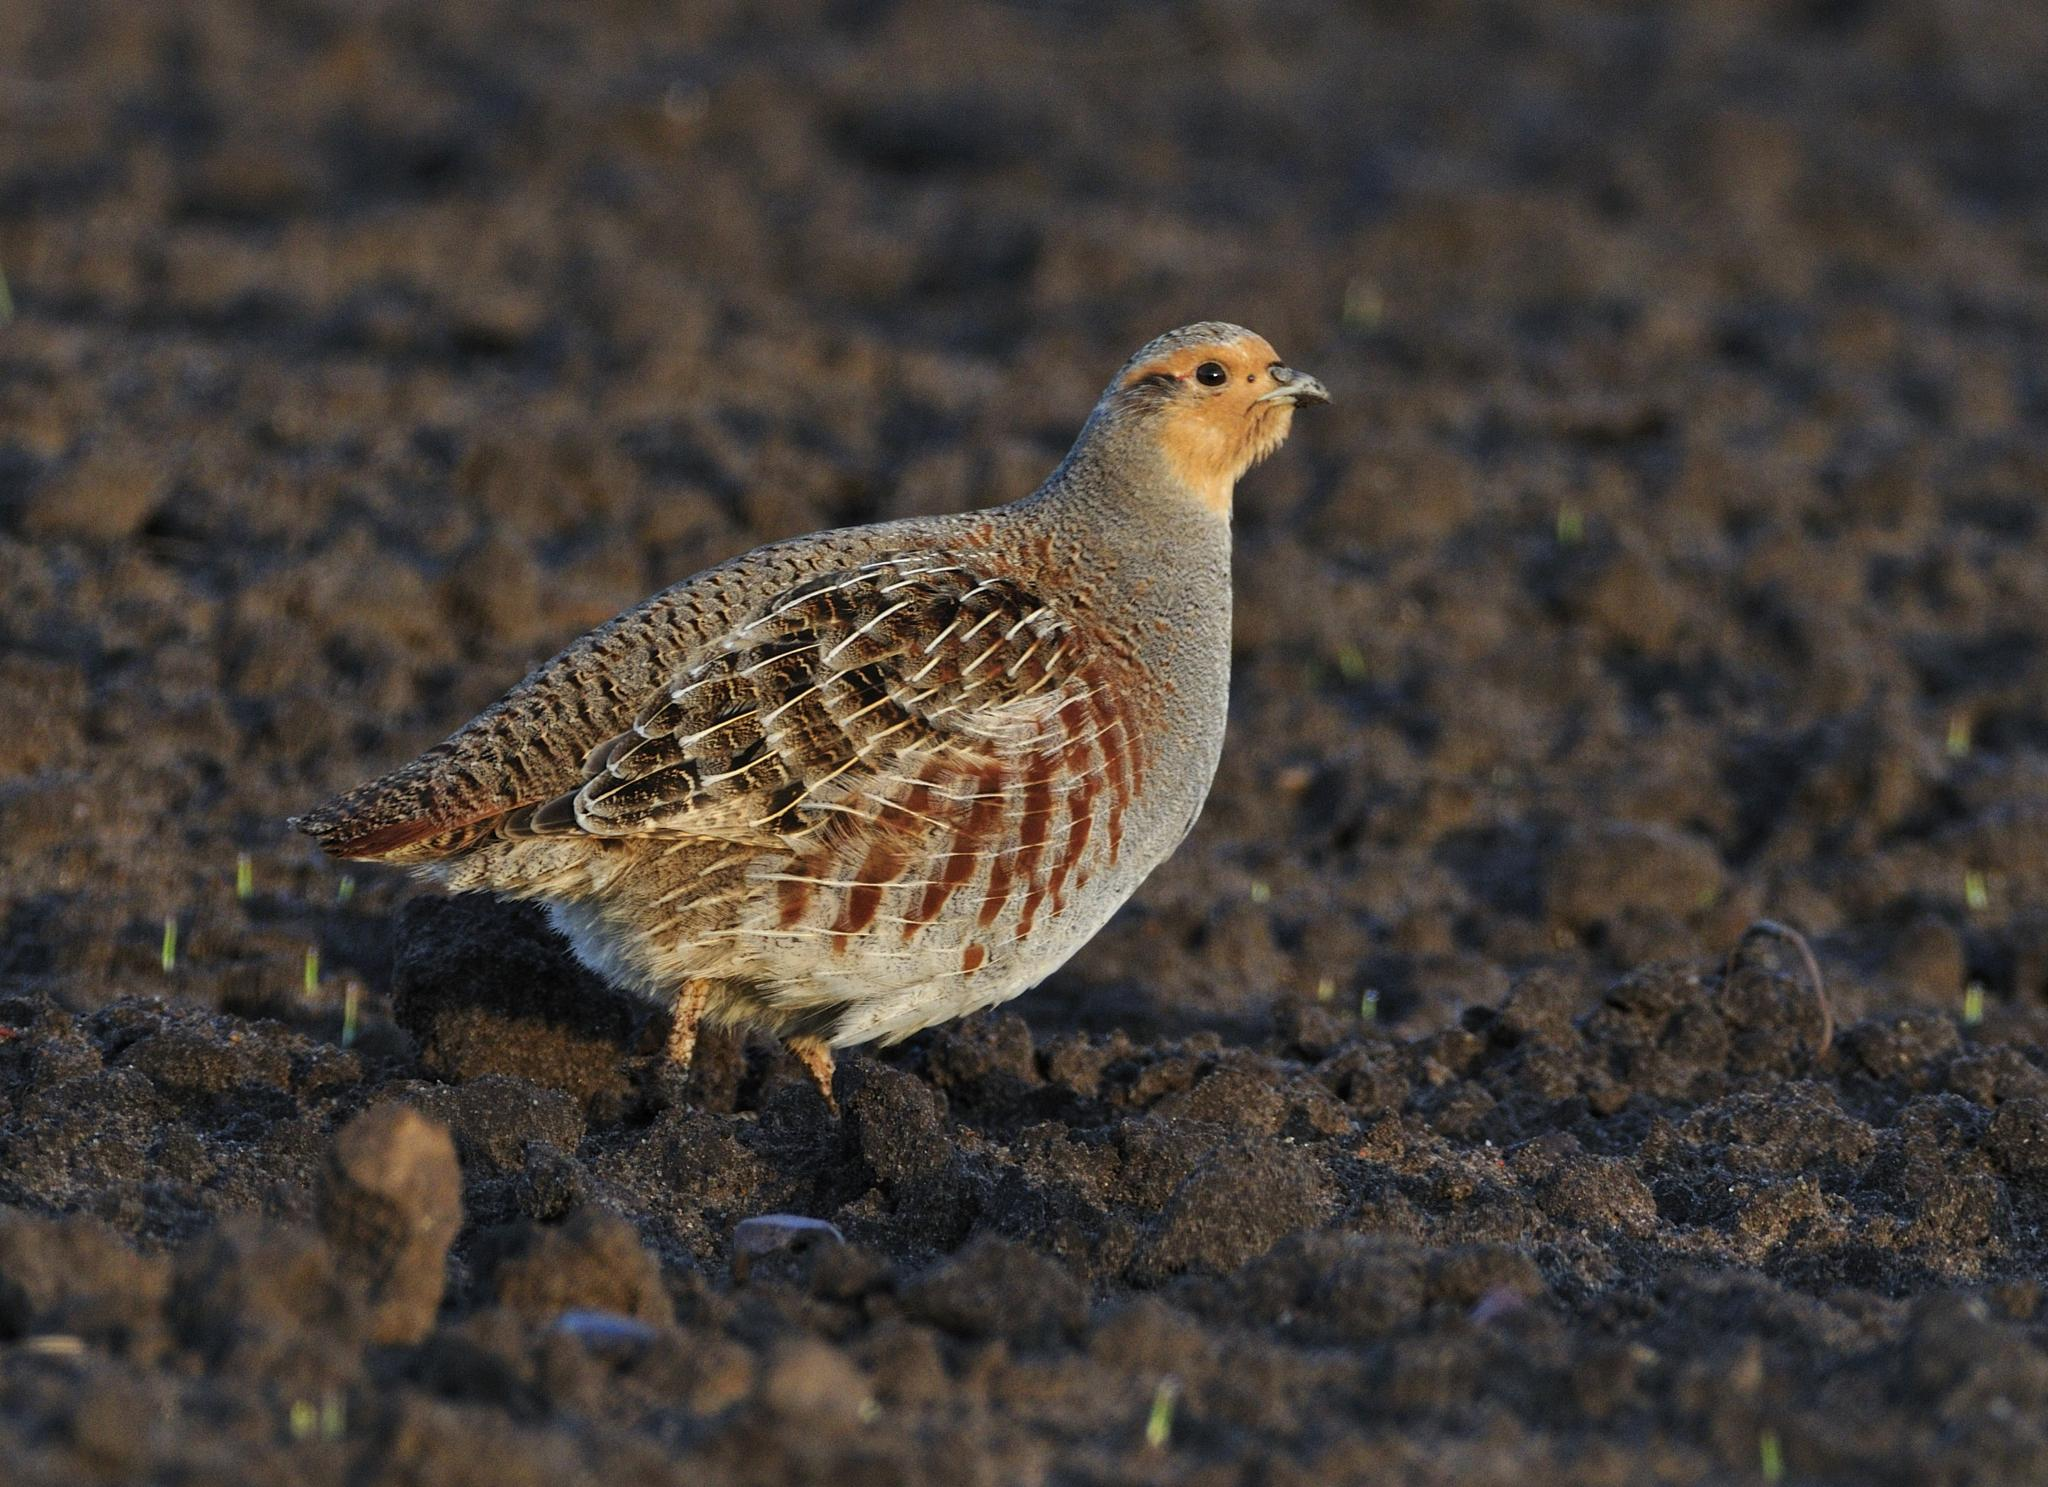 Partridge in early morning light by Göran Gustafson